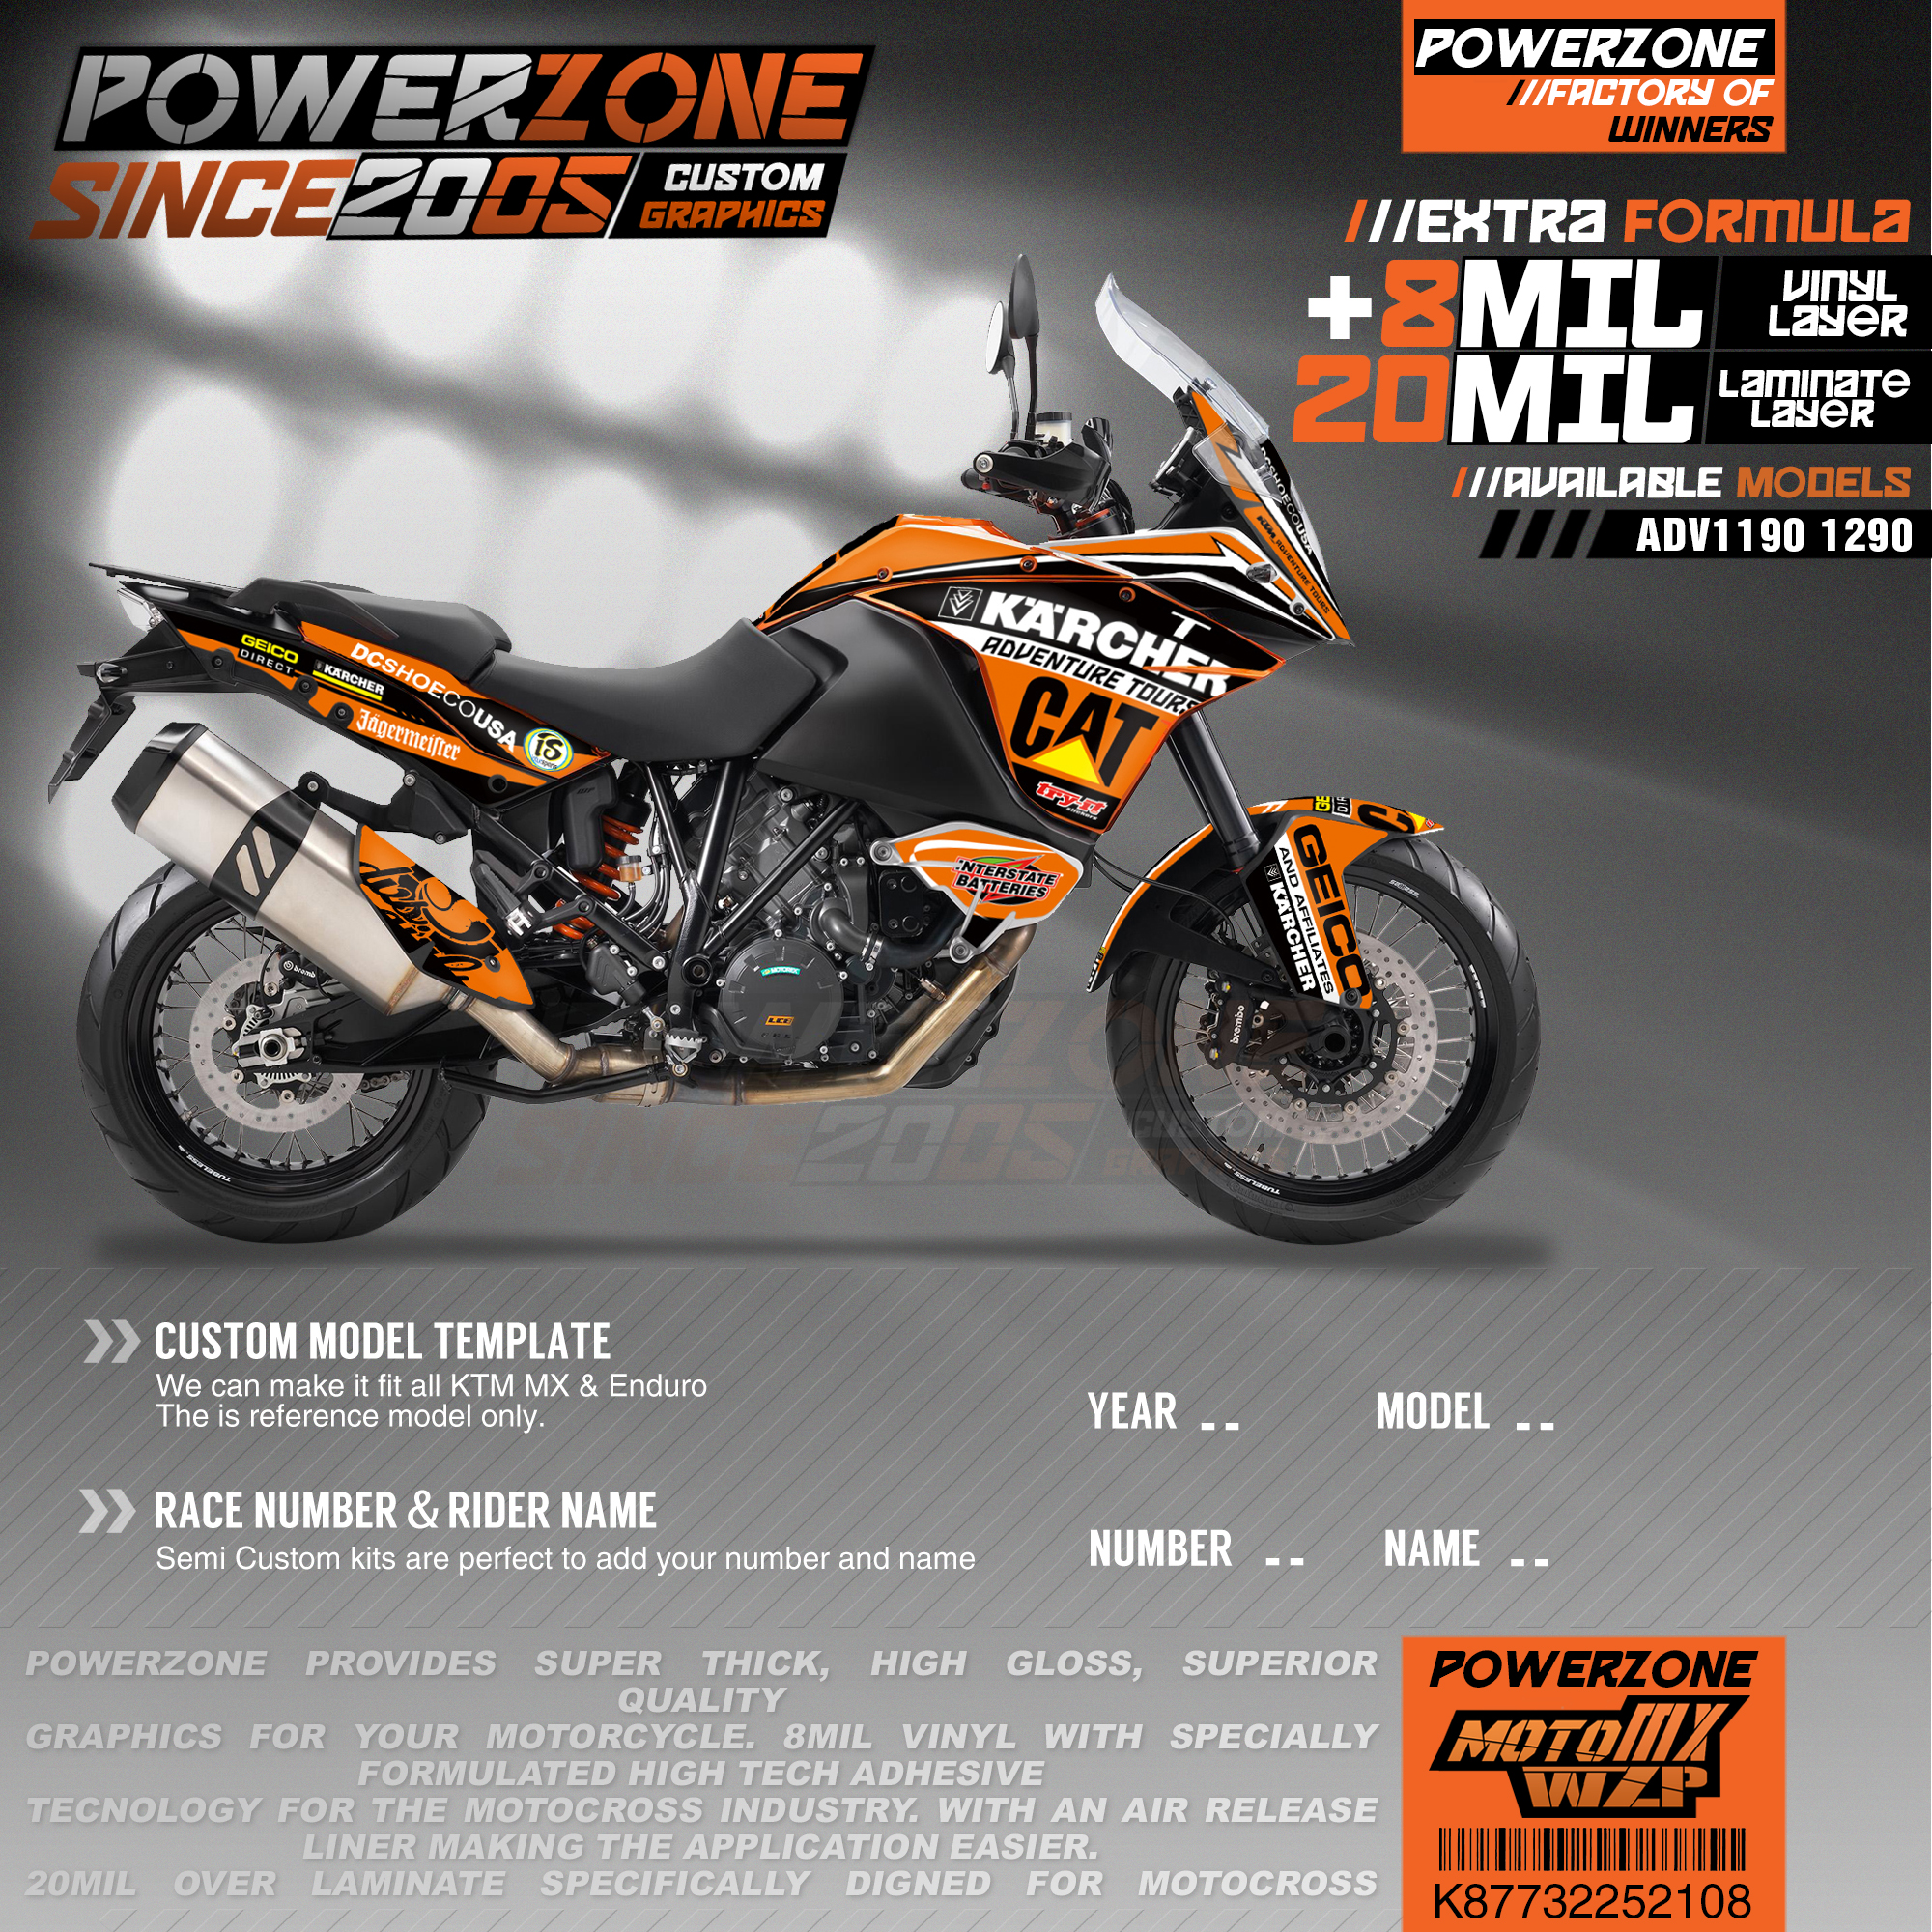 PowerZone Custom Team Graphics Backgrounds Decals 3M Stickers Kit For KTM ADV 1050 1090 1190 1290 108